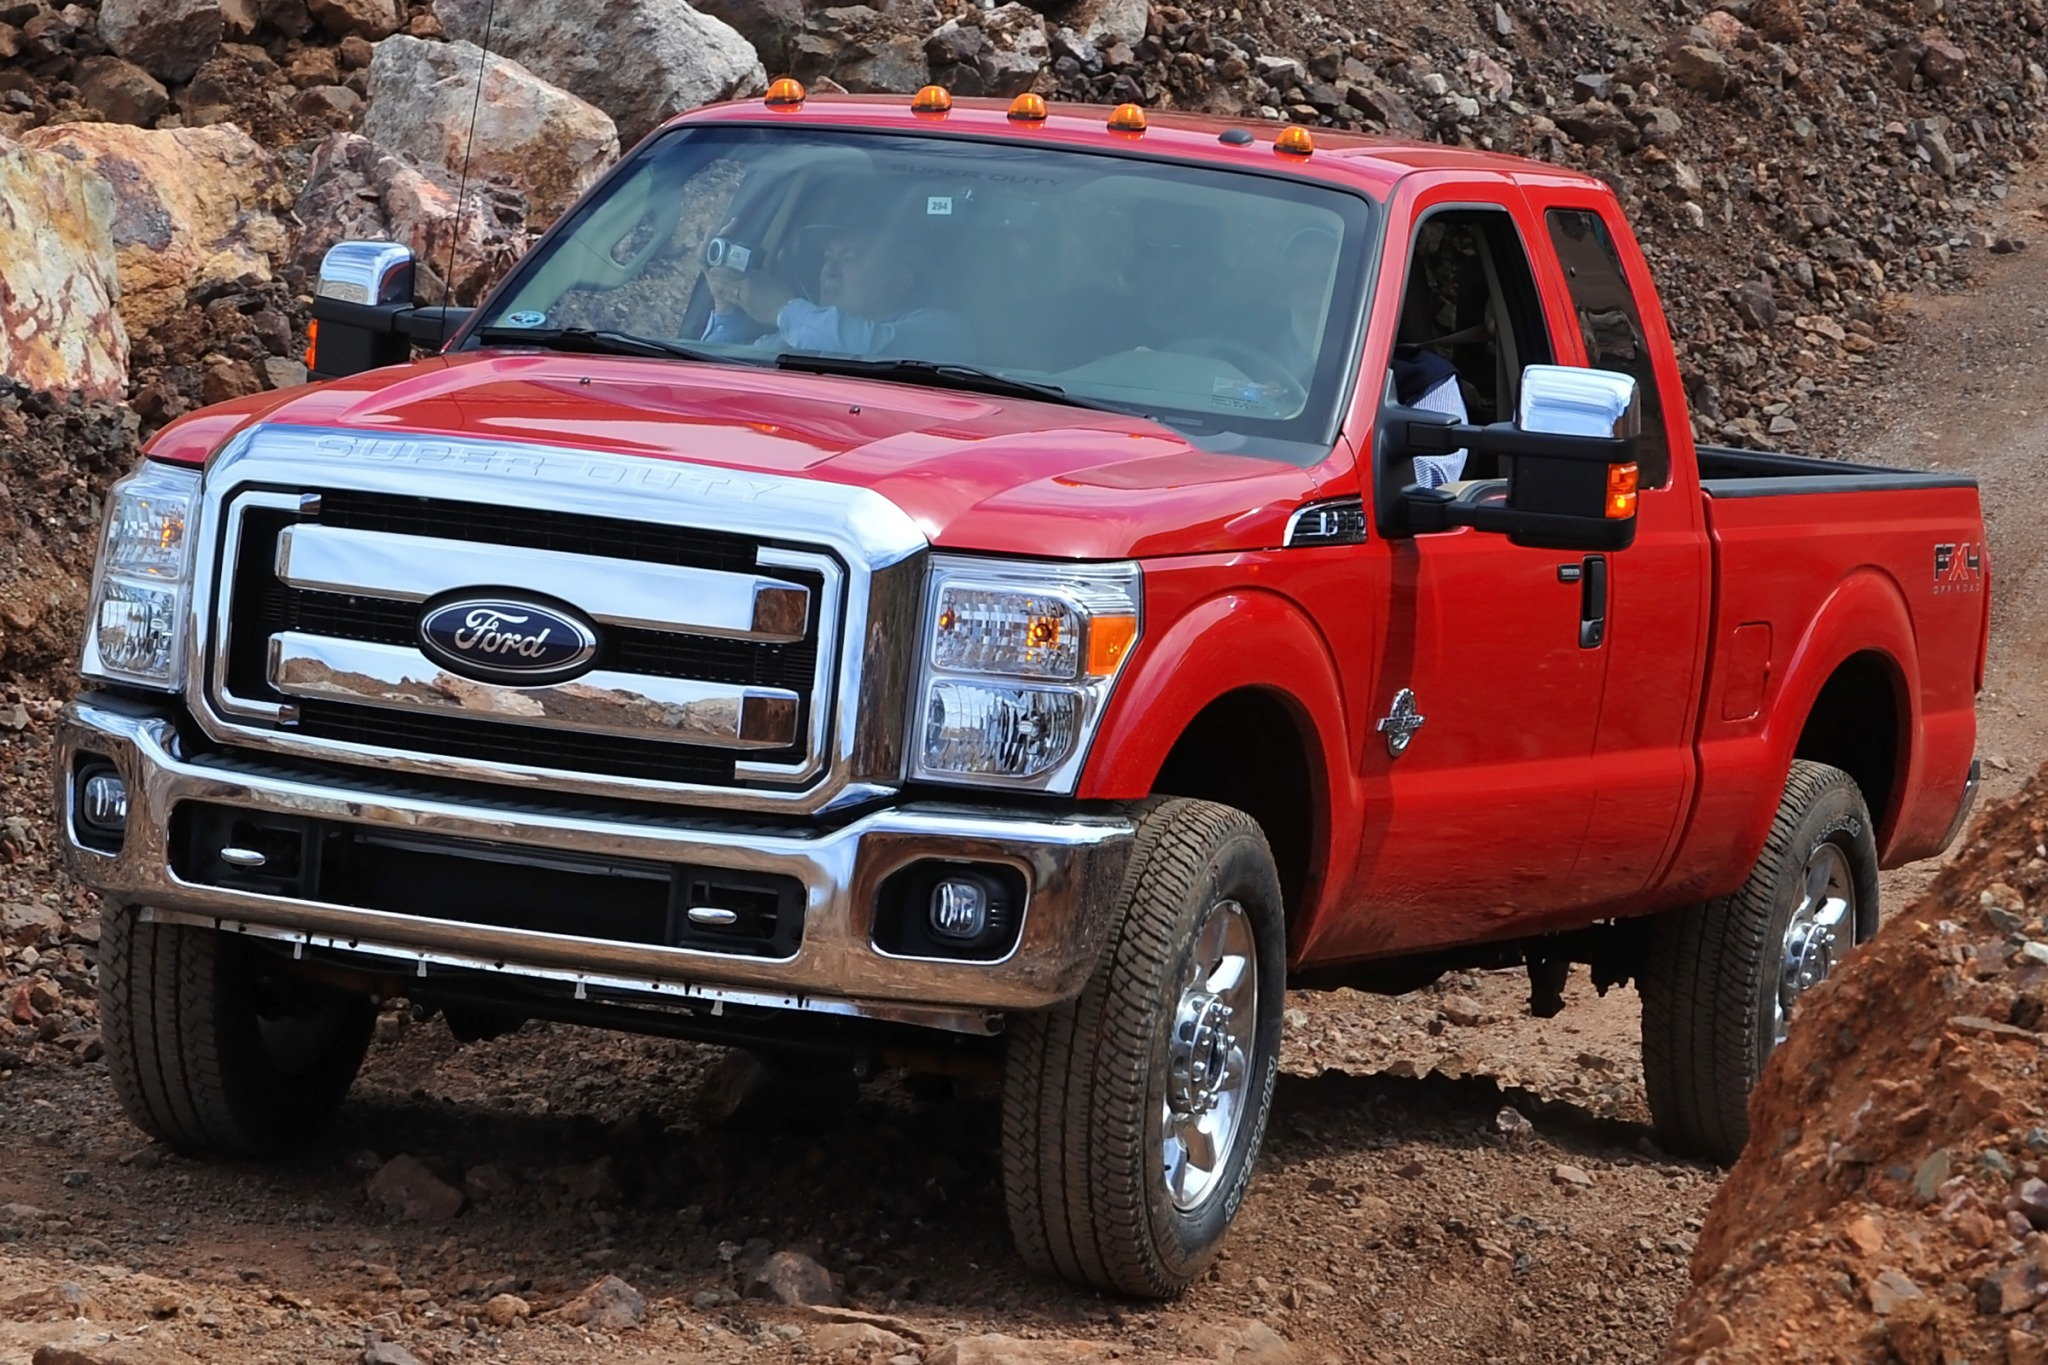 2014 Ford F-250 Super Dut interior #4